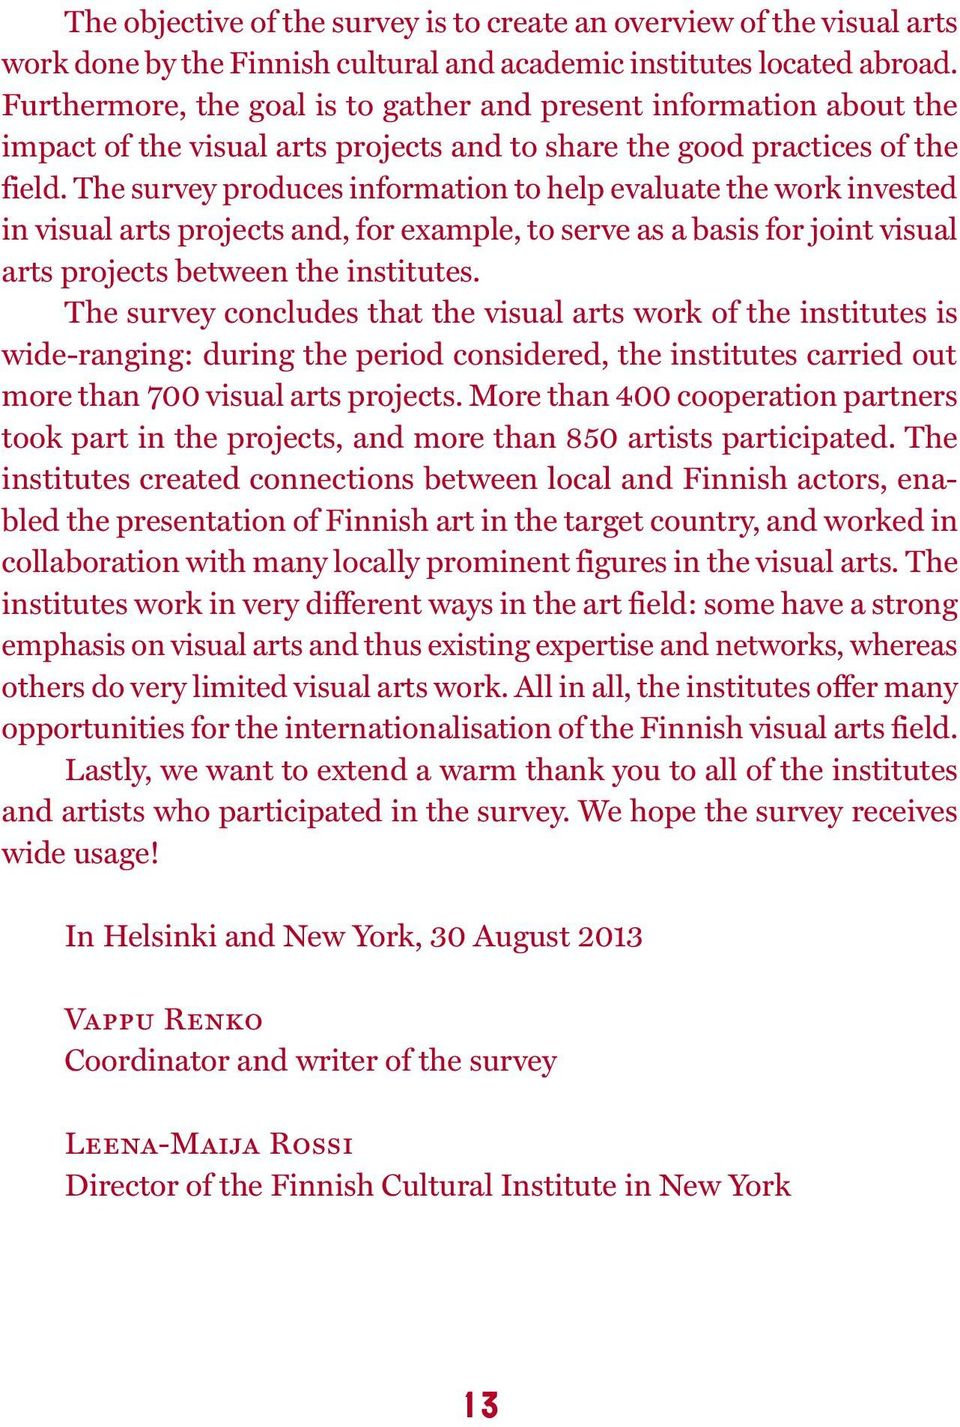 The survey produces information to help evaluate the work invested in visual arts projects and, for example, to serve as a basis for joint visual arts projects between the institutes.